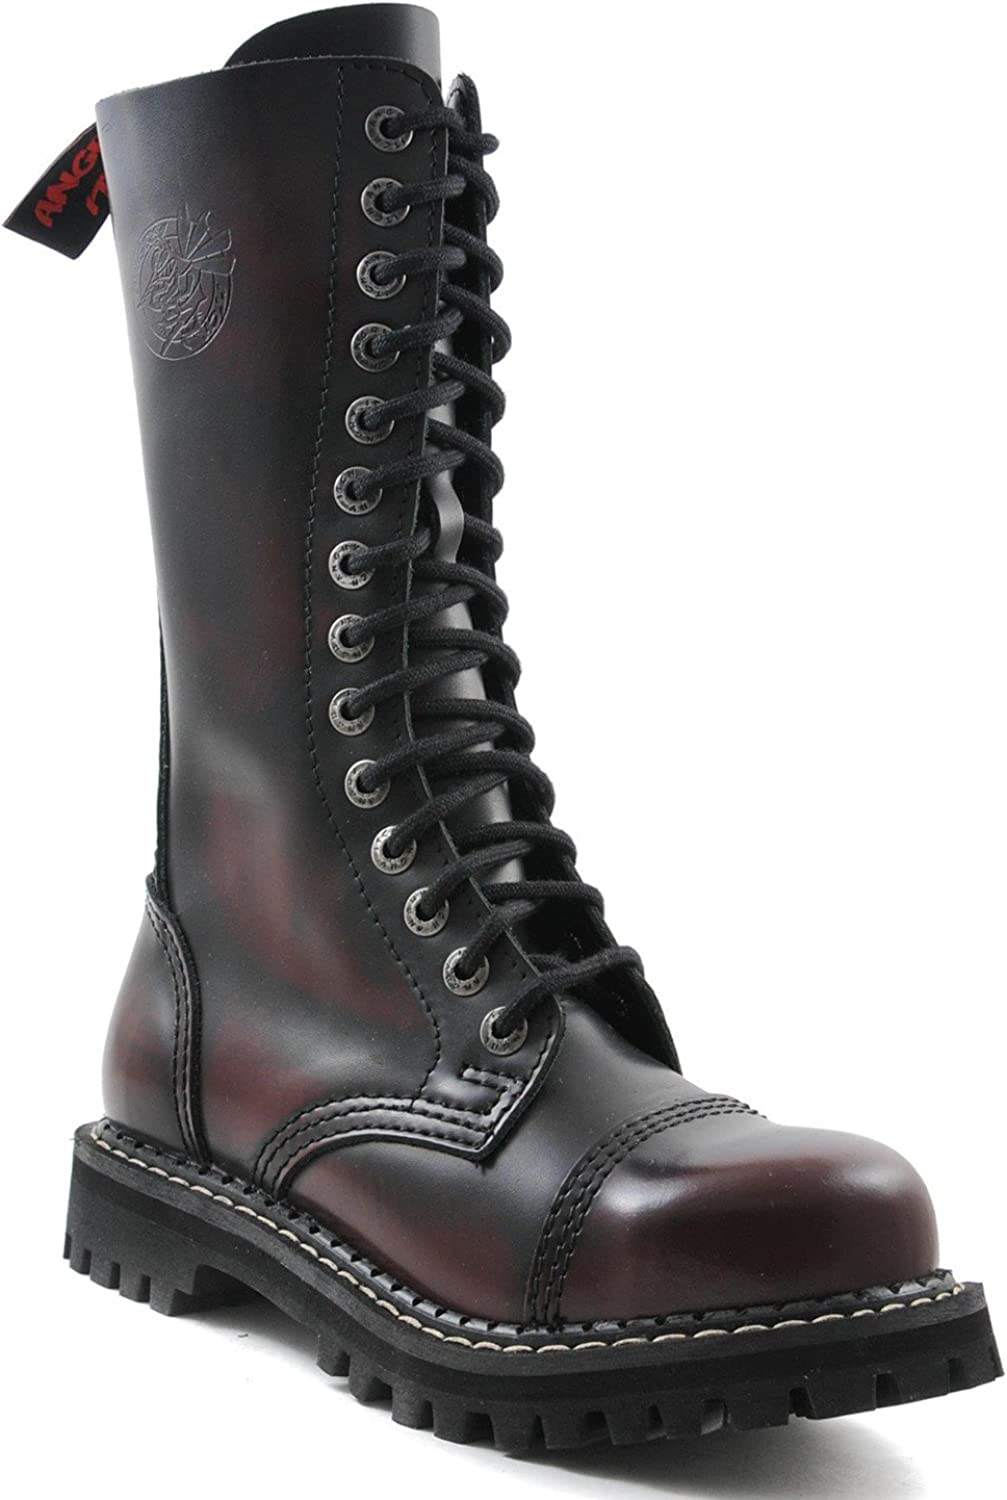 ANGRY ITCH 14-Loch Gothic Punk Army Ranger Armee Burgundy Rub-Off Leder Stiefel mit RV & Stahlkappe - Gren 36-48 - Made in EU